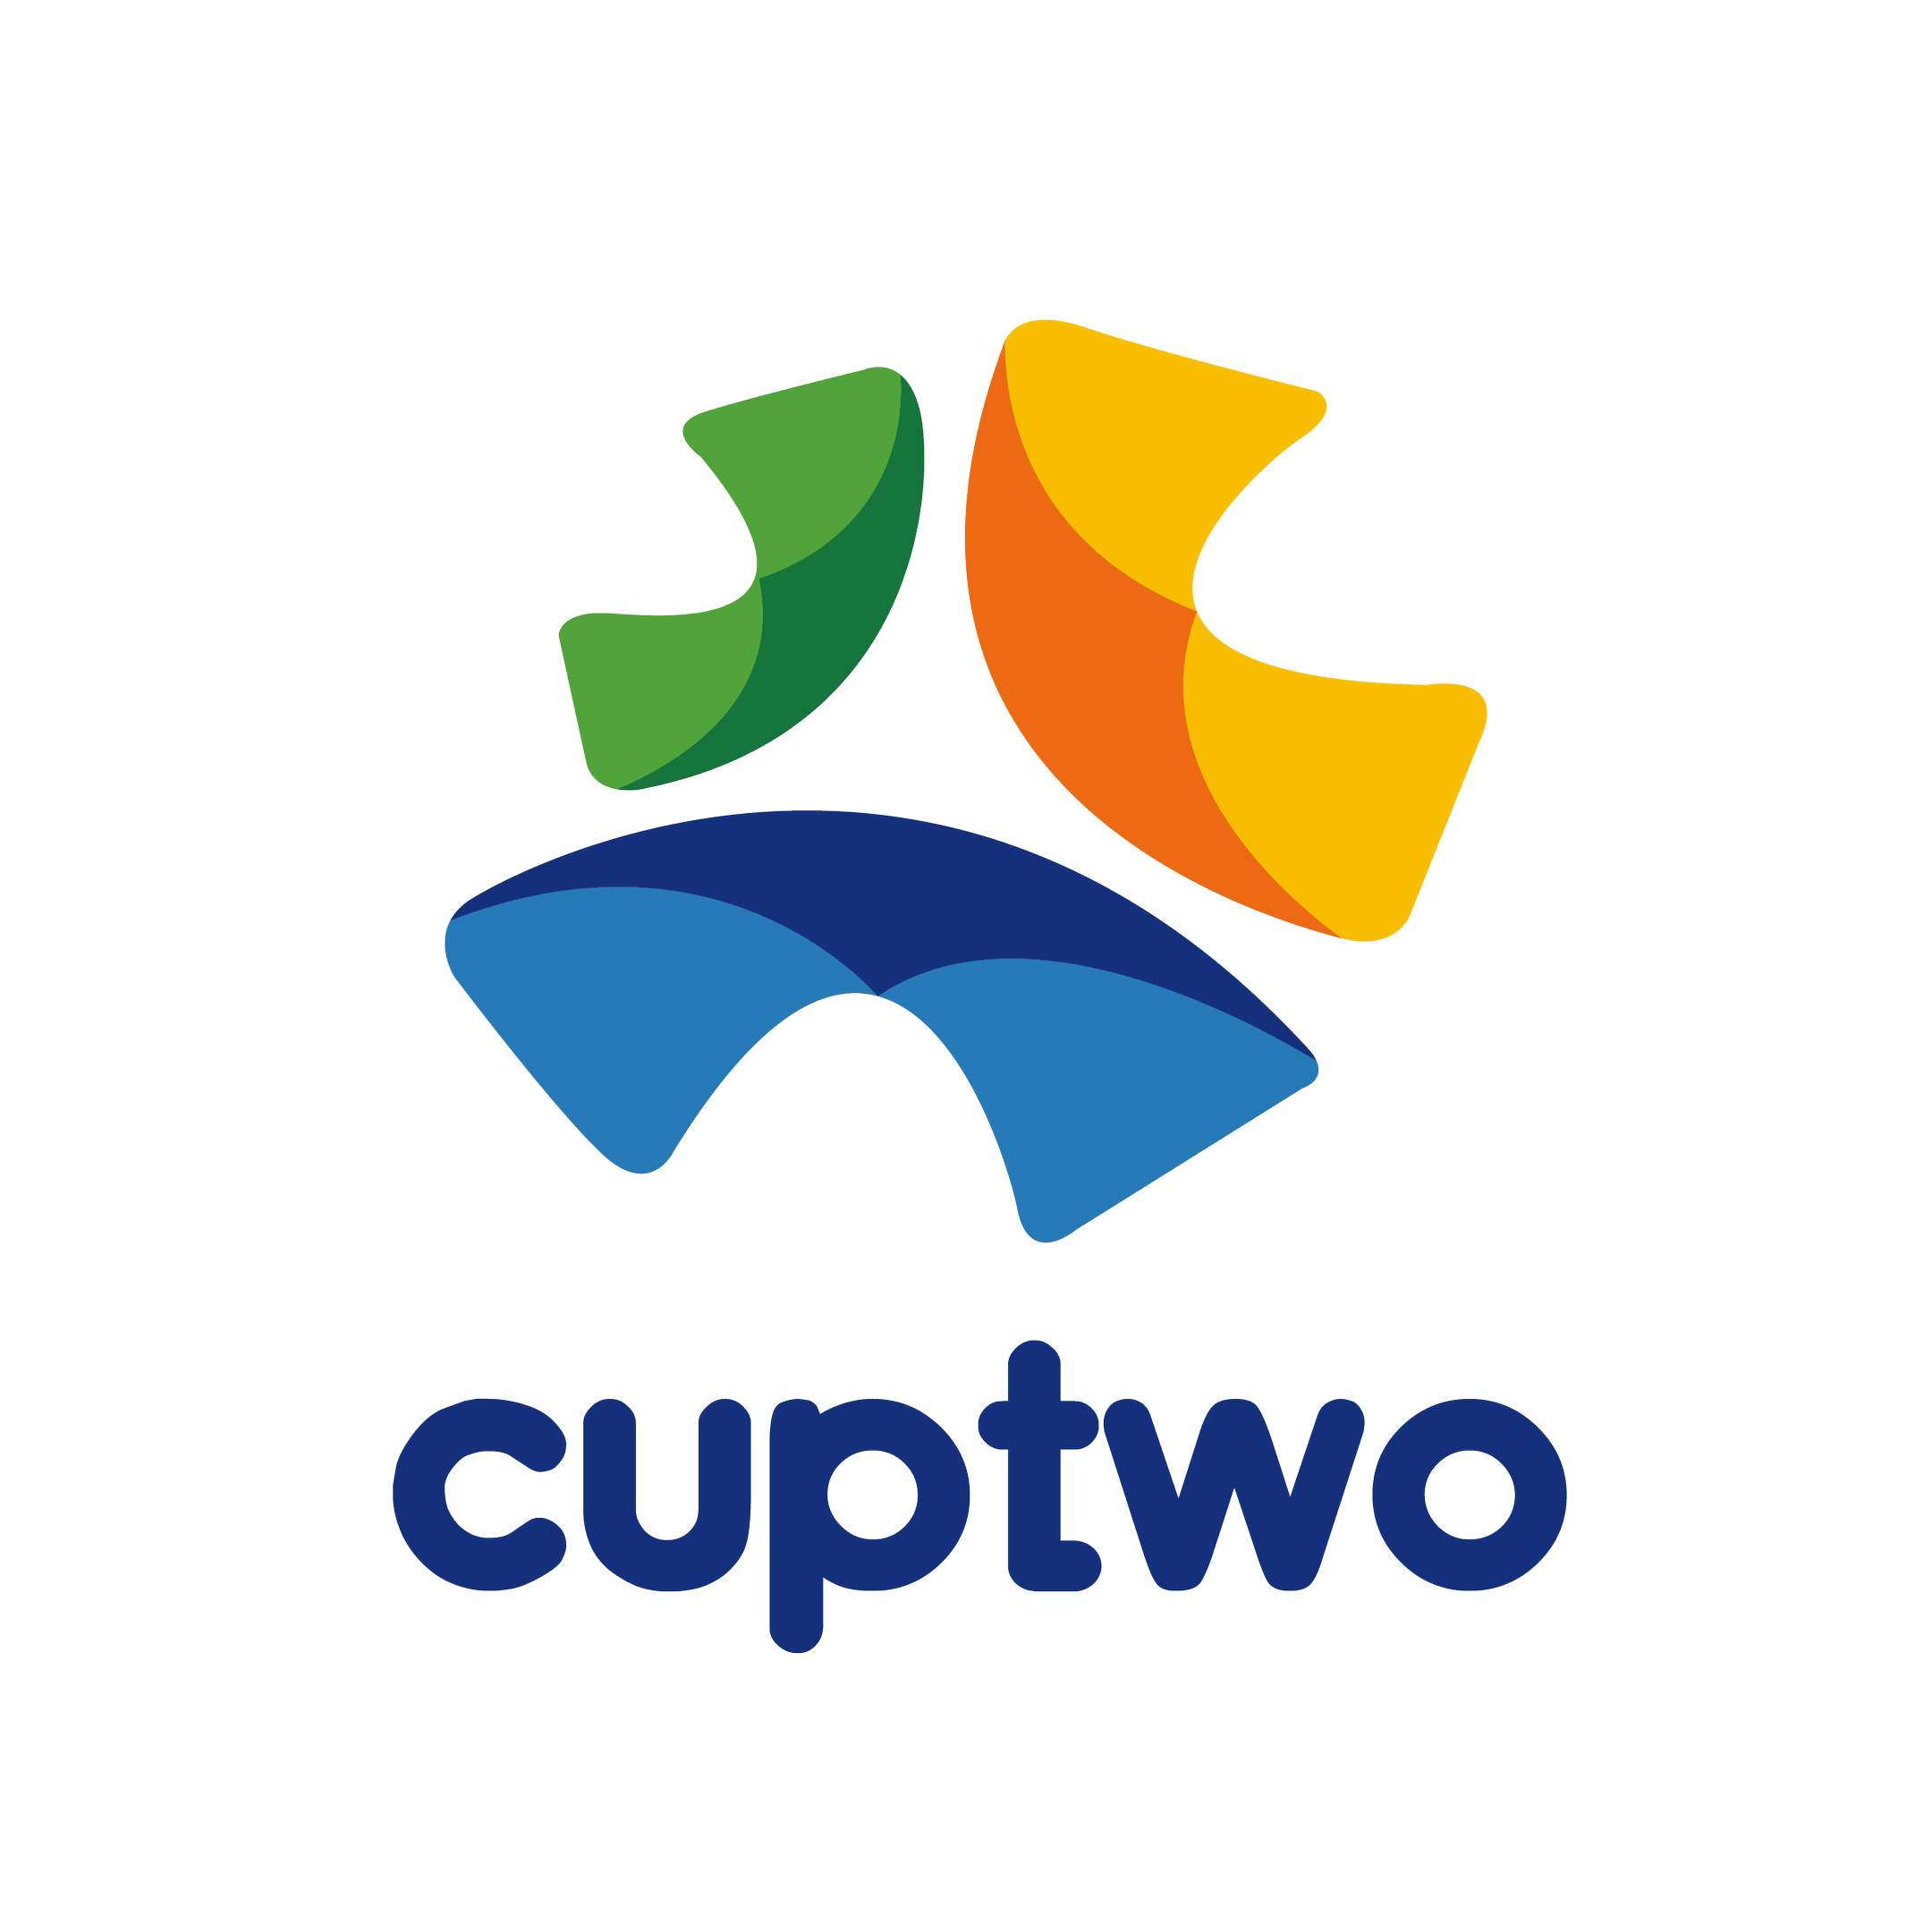 cuptwo